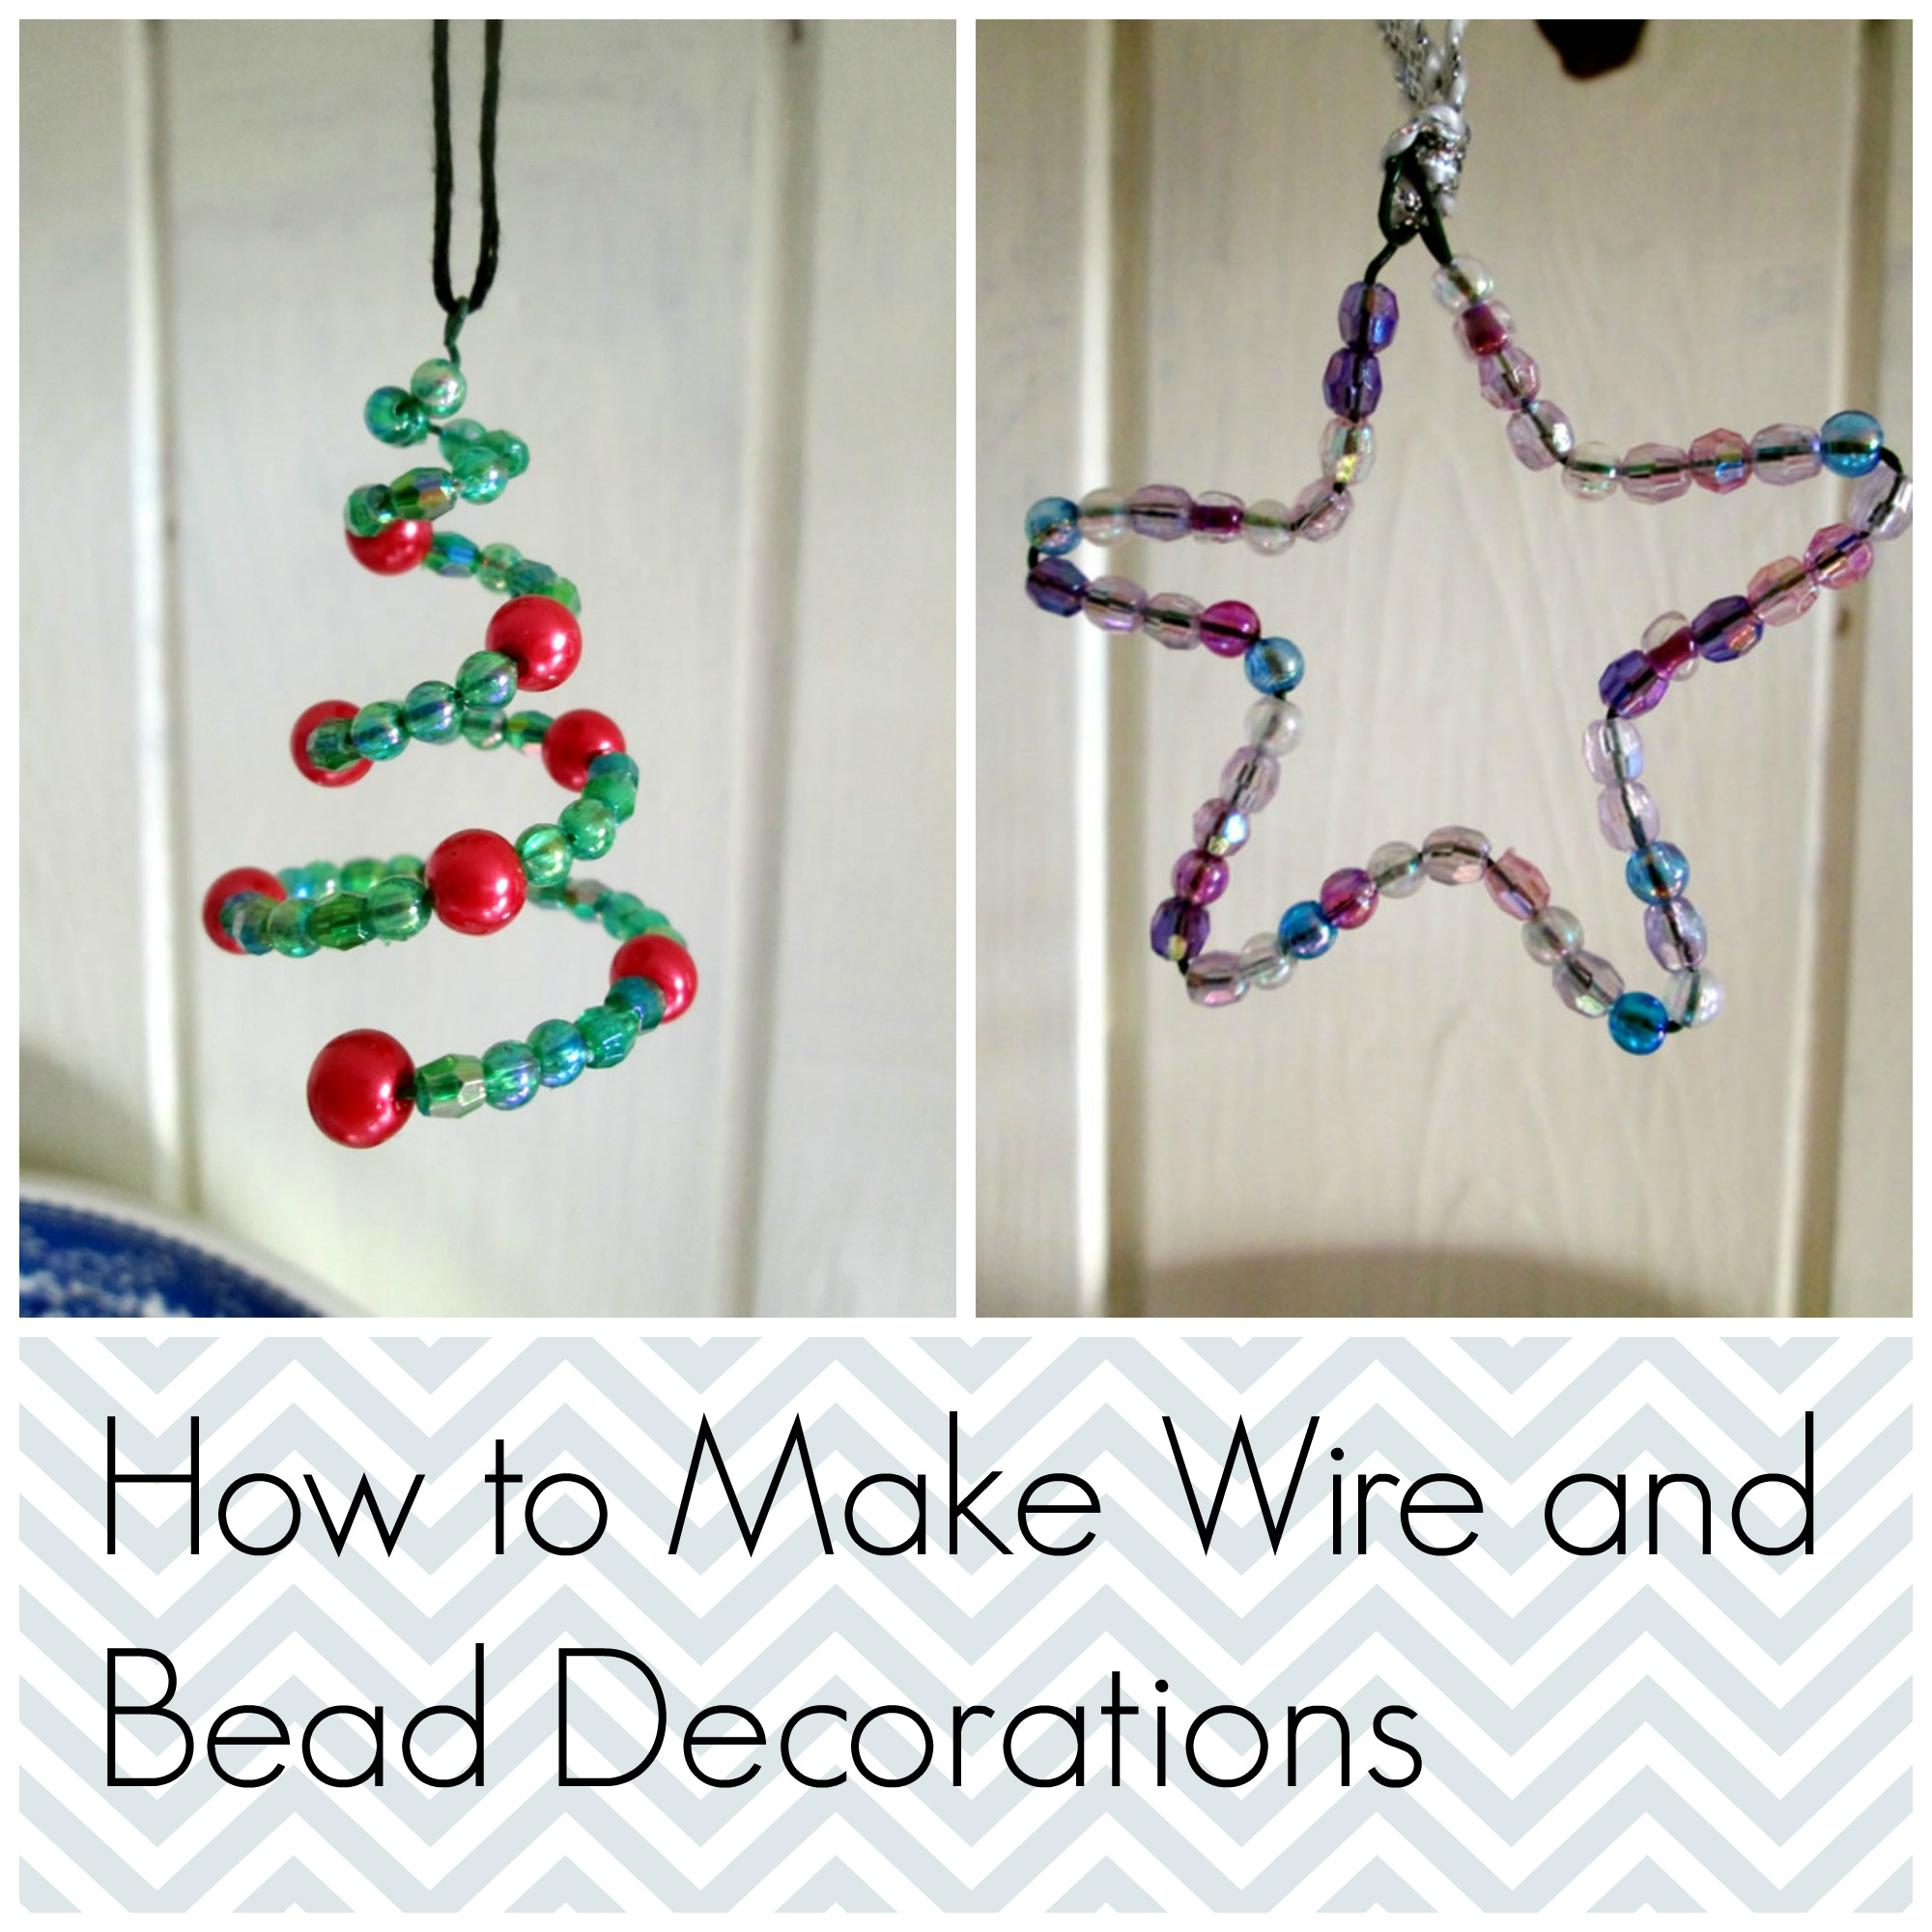 how to make wire and bead decorations